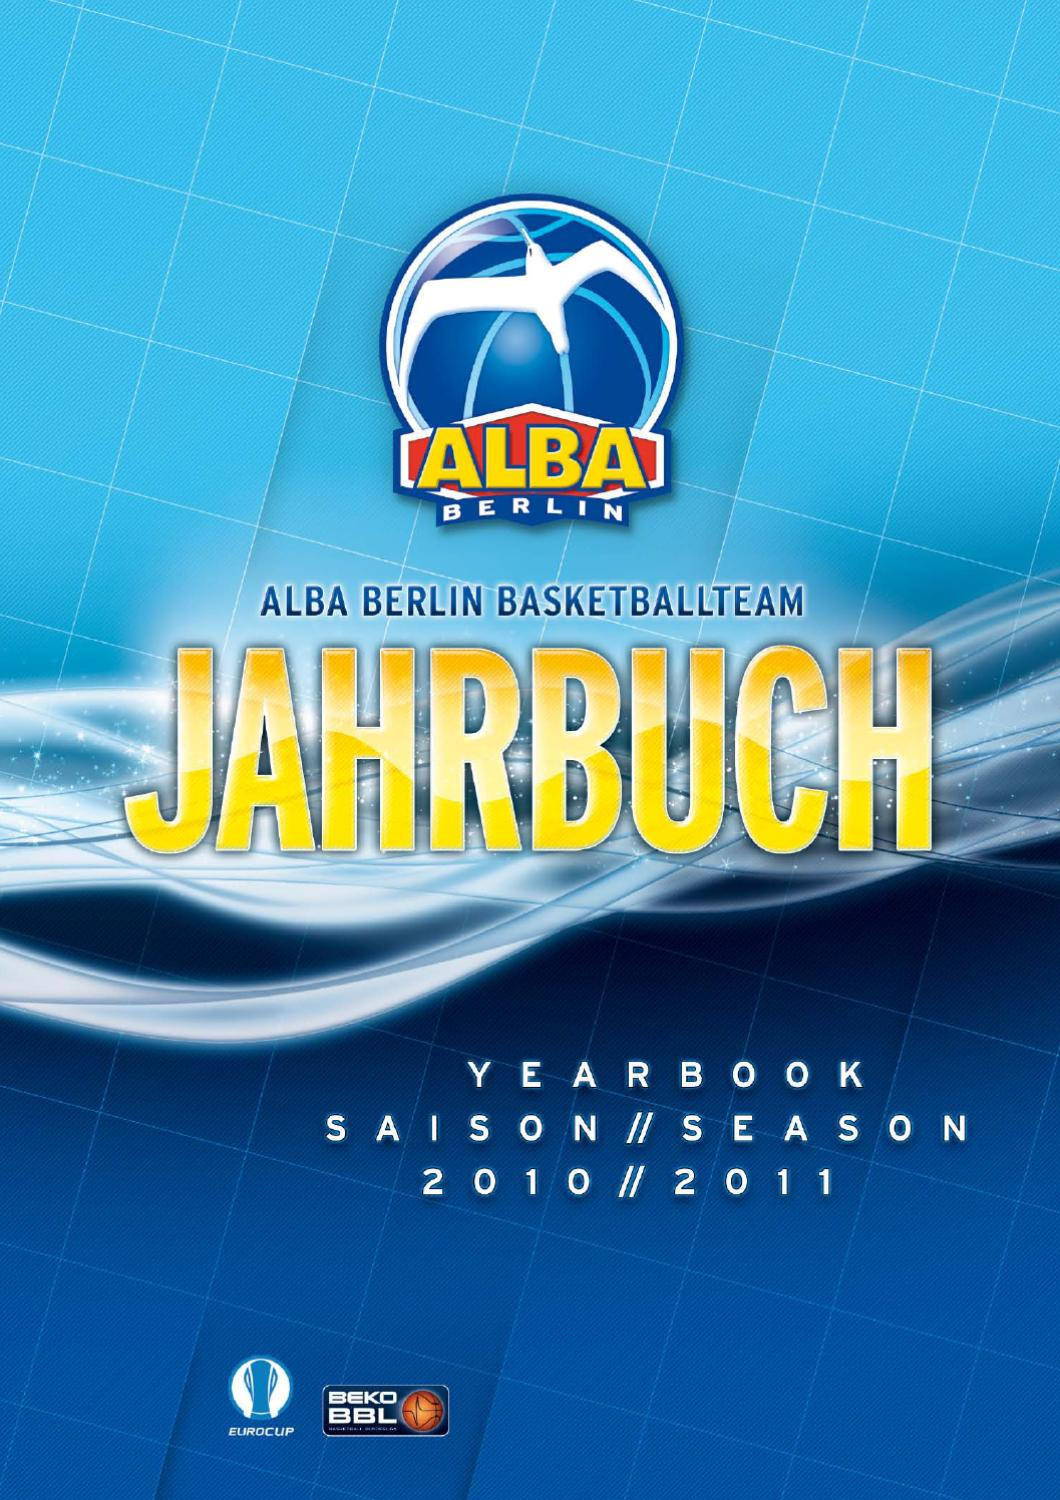 alba berlin jahrbuch 2010 2011 by justus strauven issuu. Black Bedroom Furniture Sets. Home Design Ideas